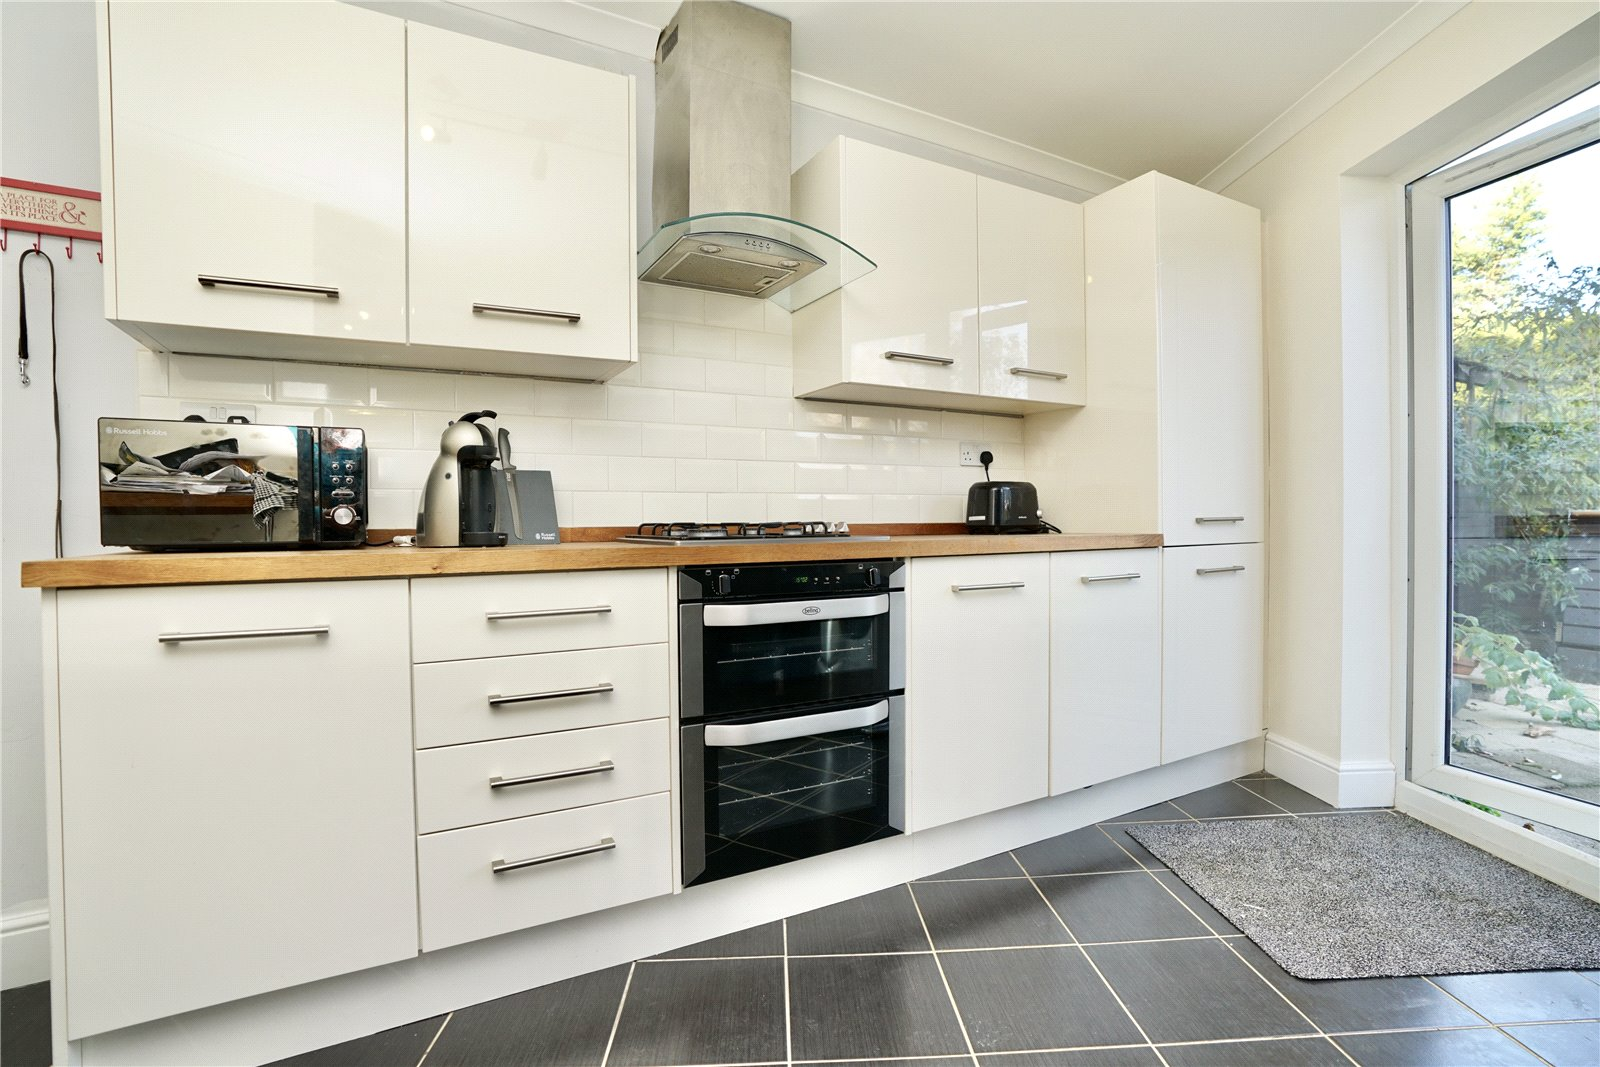 4 bed house for sale in Codrington Court, Eaton Socon  - Property Image 2